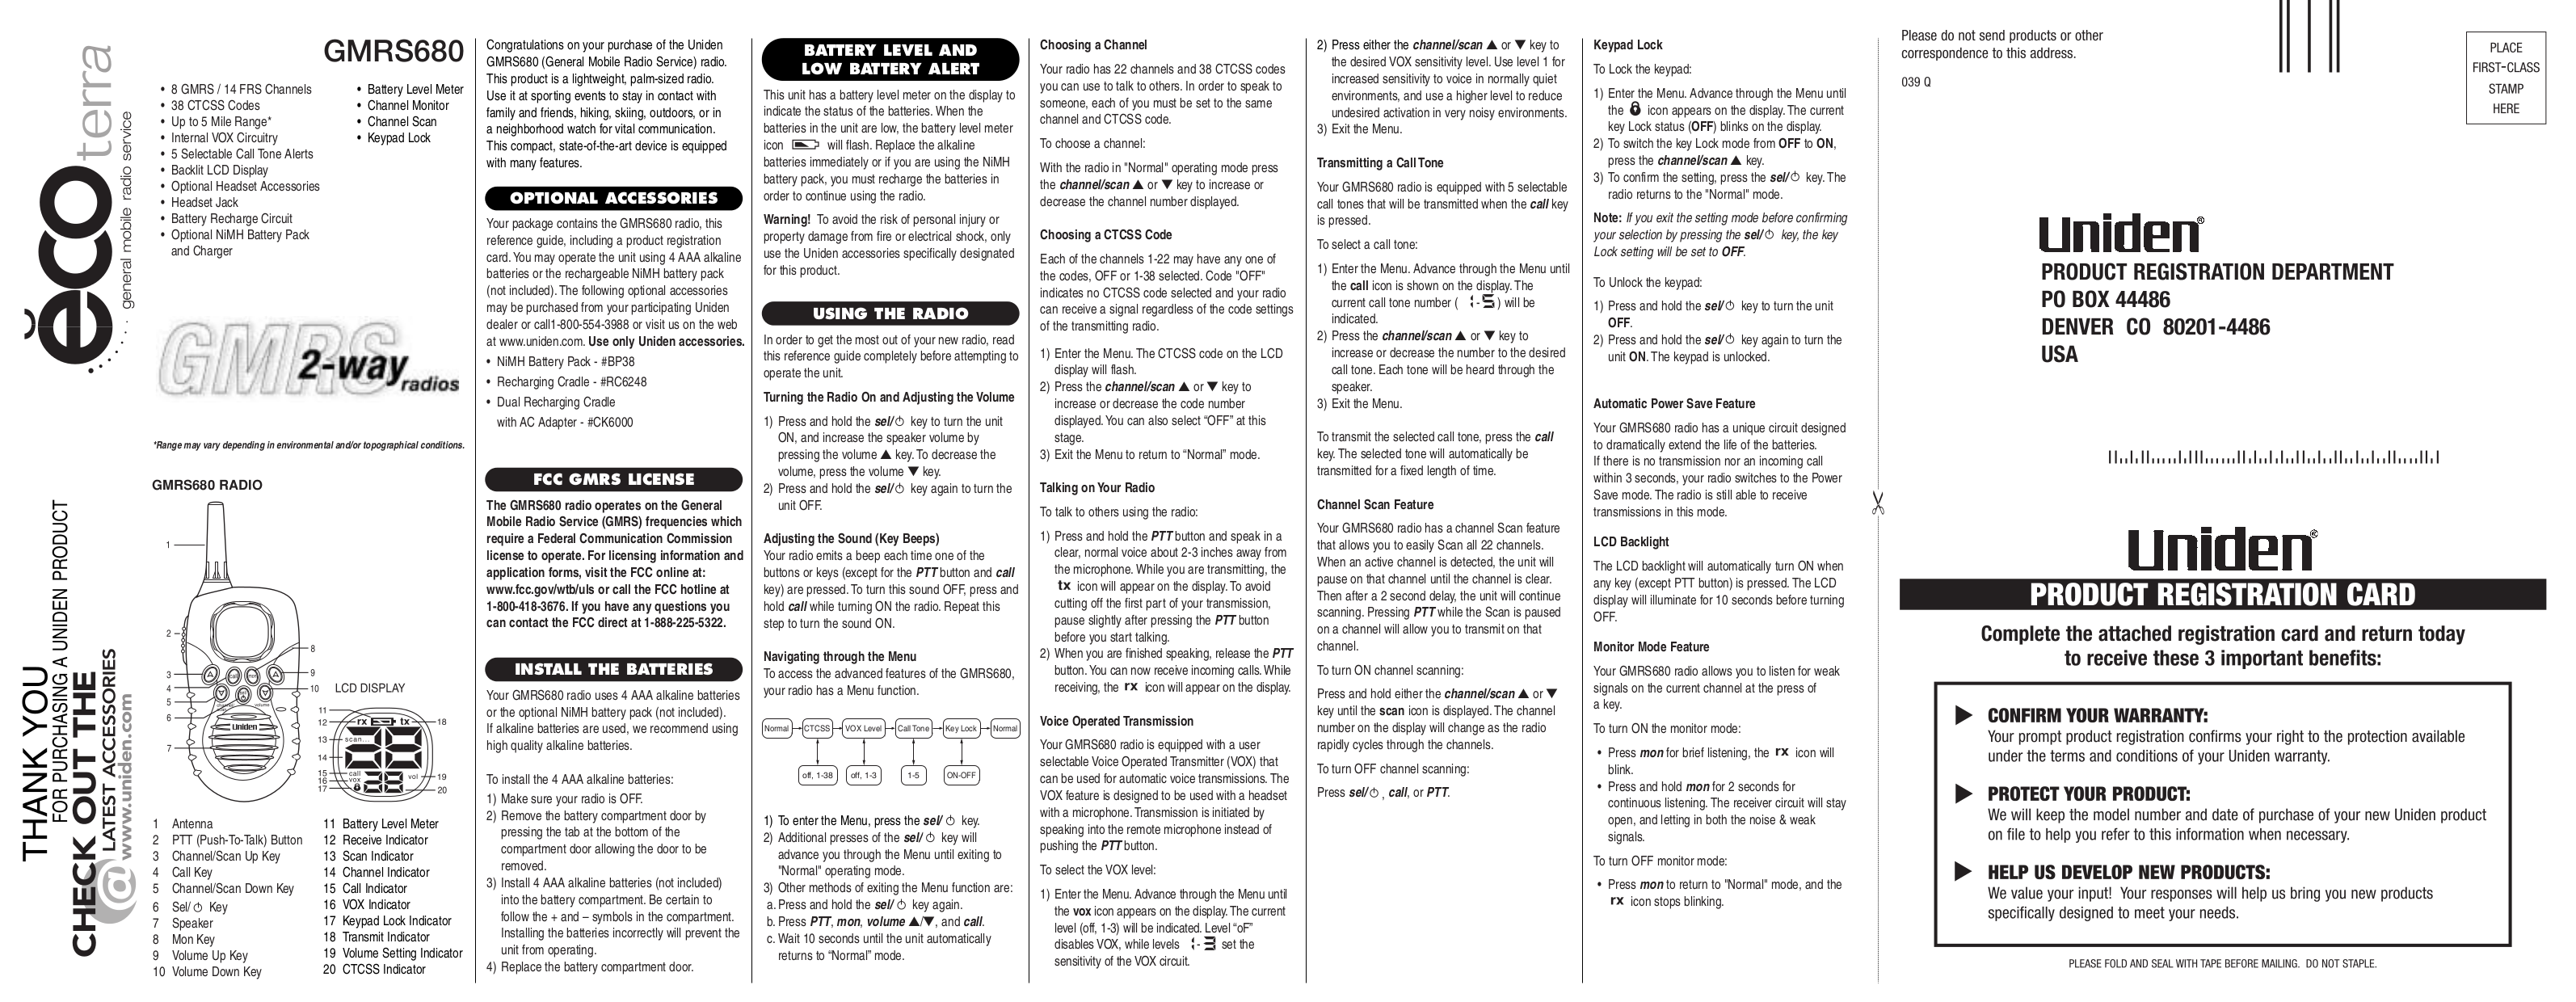 pdf for Uniden 2-way Radio GMRS680 manual